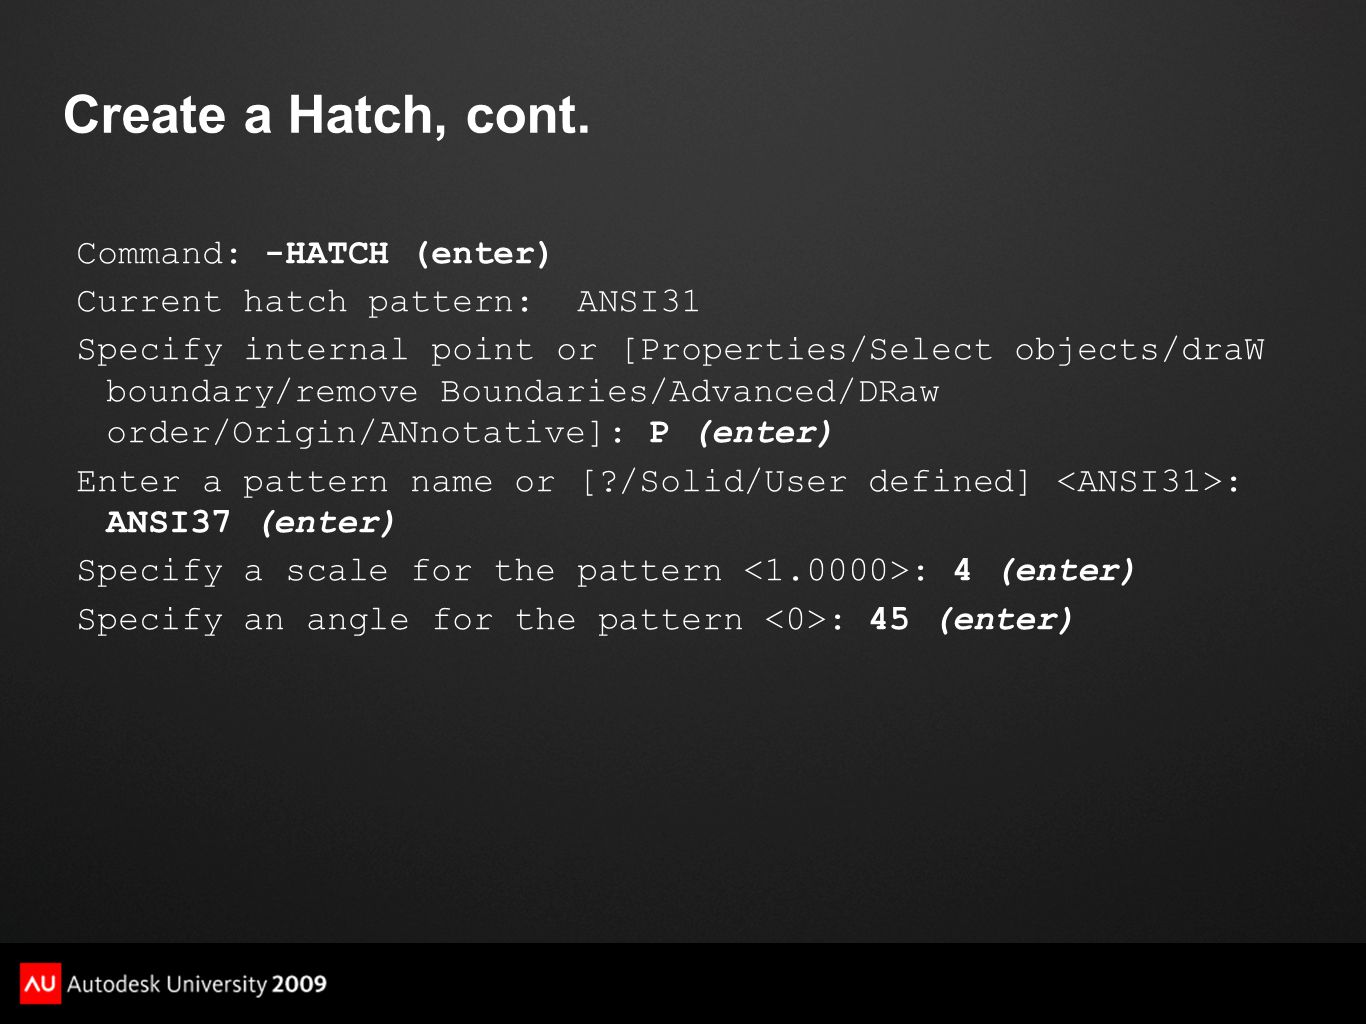 Create a Hatch, cont.